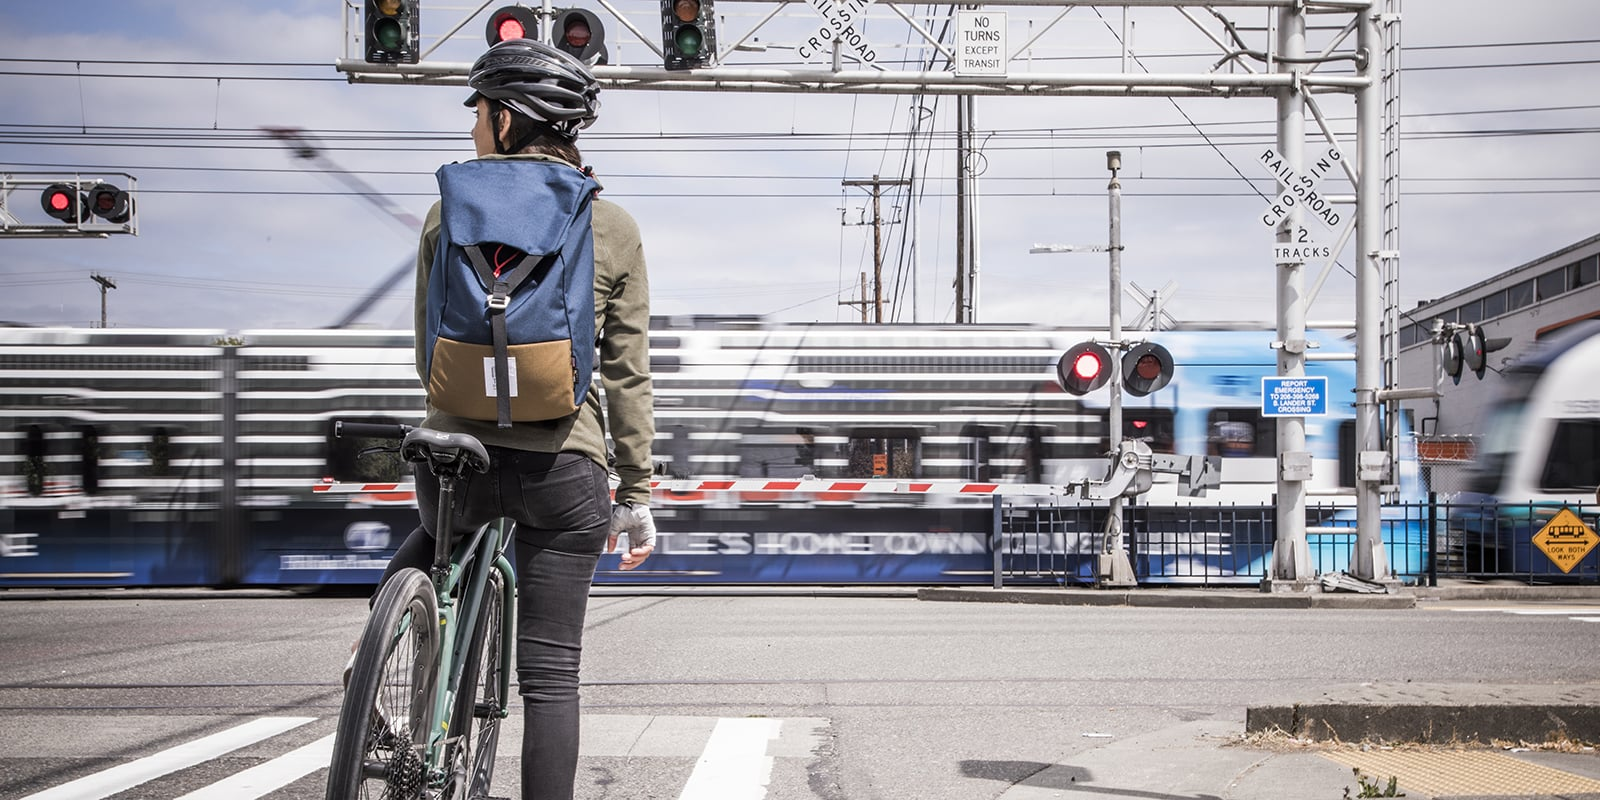 Find out the Cycling Safety Tips to avoid accidents